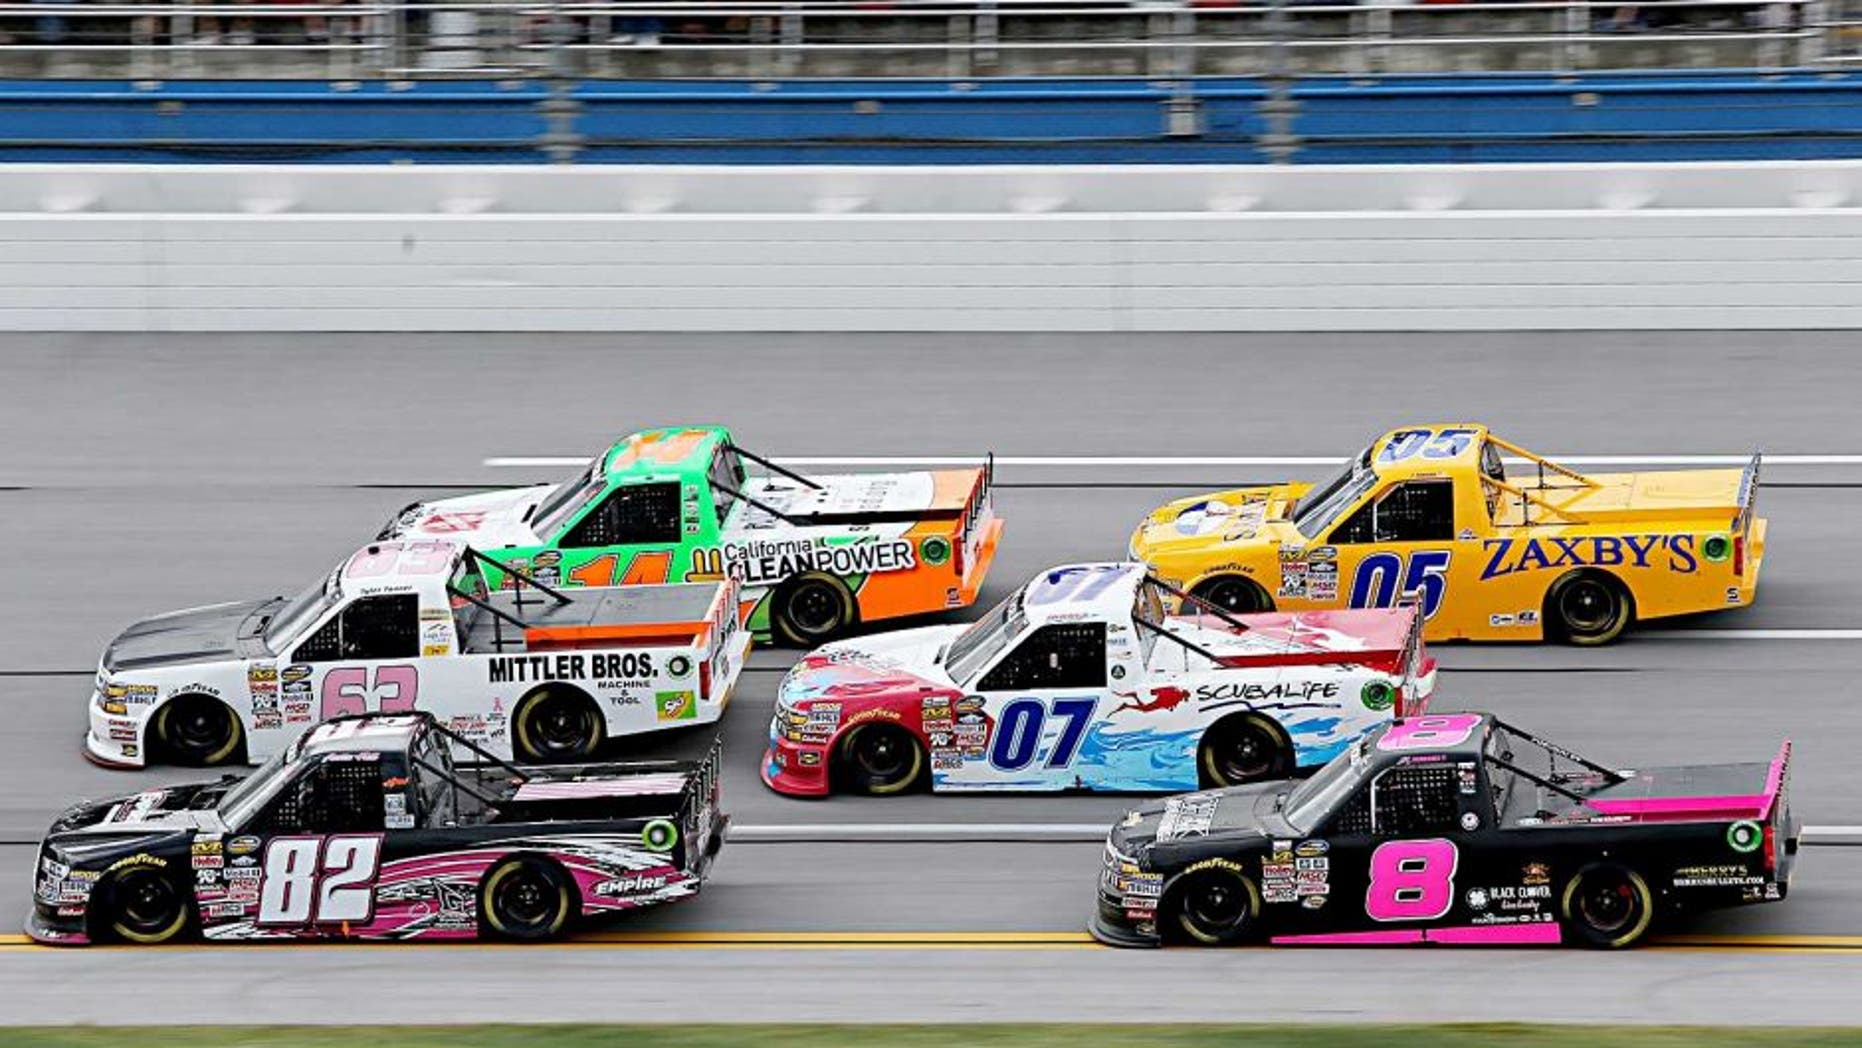 TALLADEGA, AL - OCTOBER 24: Austin Hill, driver of the #82 EmpireRacingDriverDevelopment/B.R.A.K.E.S Ford, and Tyler Tanner, driver of the #63 Mittler Bros./Ski Soda Chevrolet, lead a pack of trucks during the NASCAR Camping World Truck Series fred's 250 at Talladega Superspeedway on October 24, 2015 in Talladega, Alabama. (Photo by Jerry Markland/Getty Images)